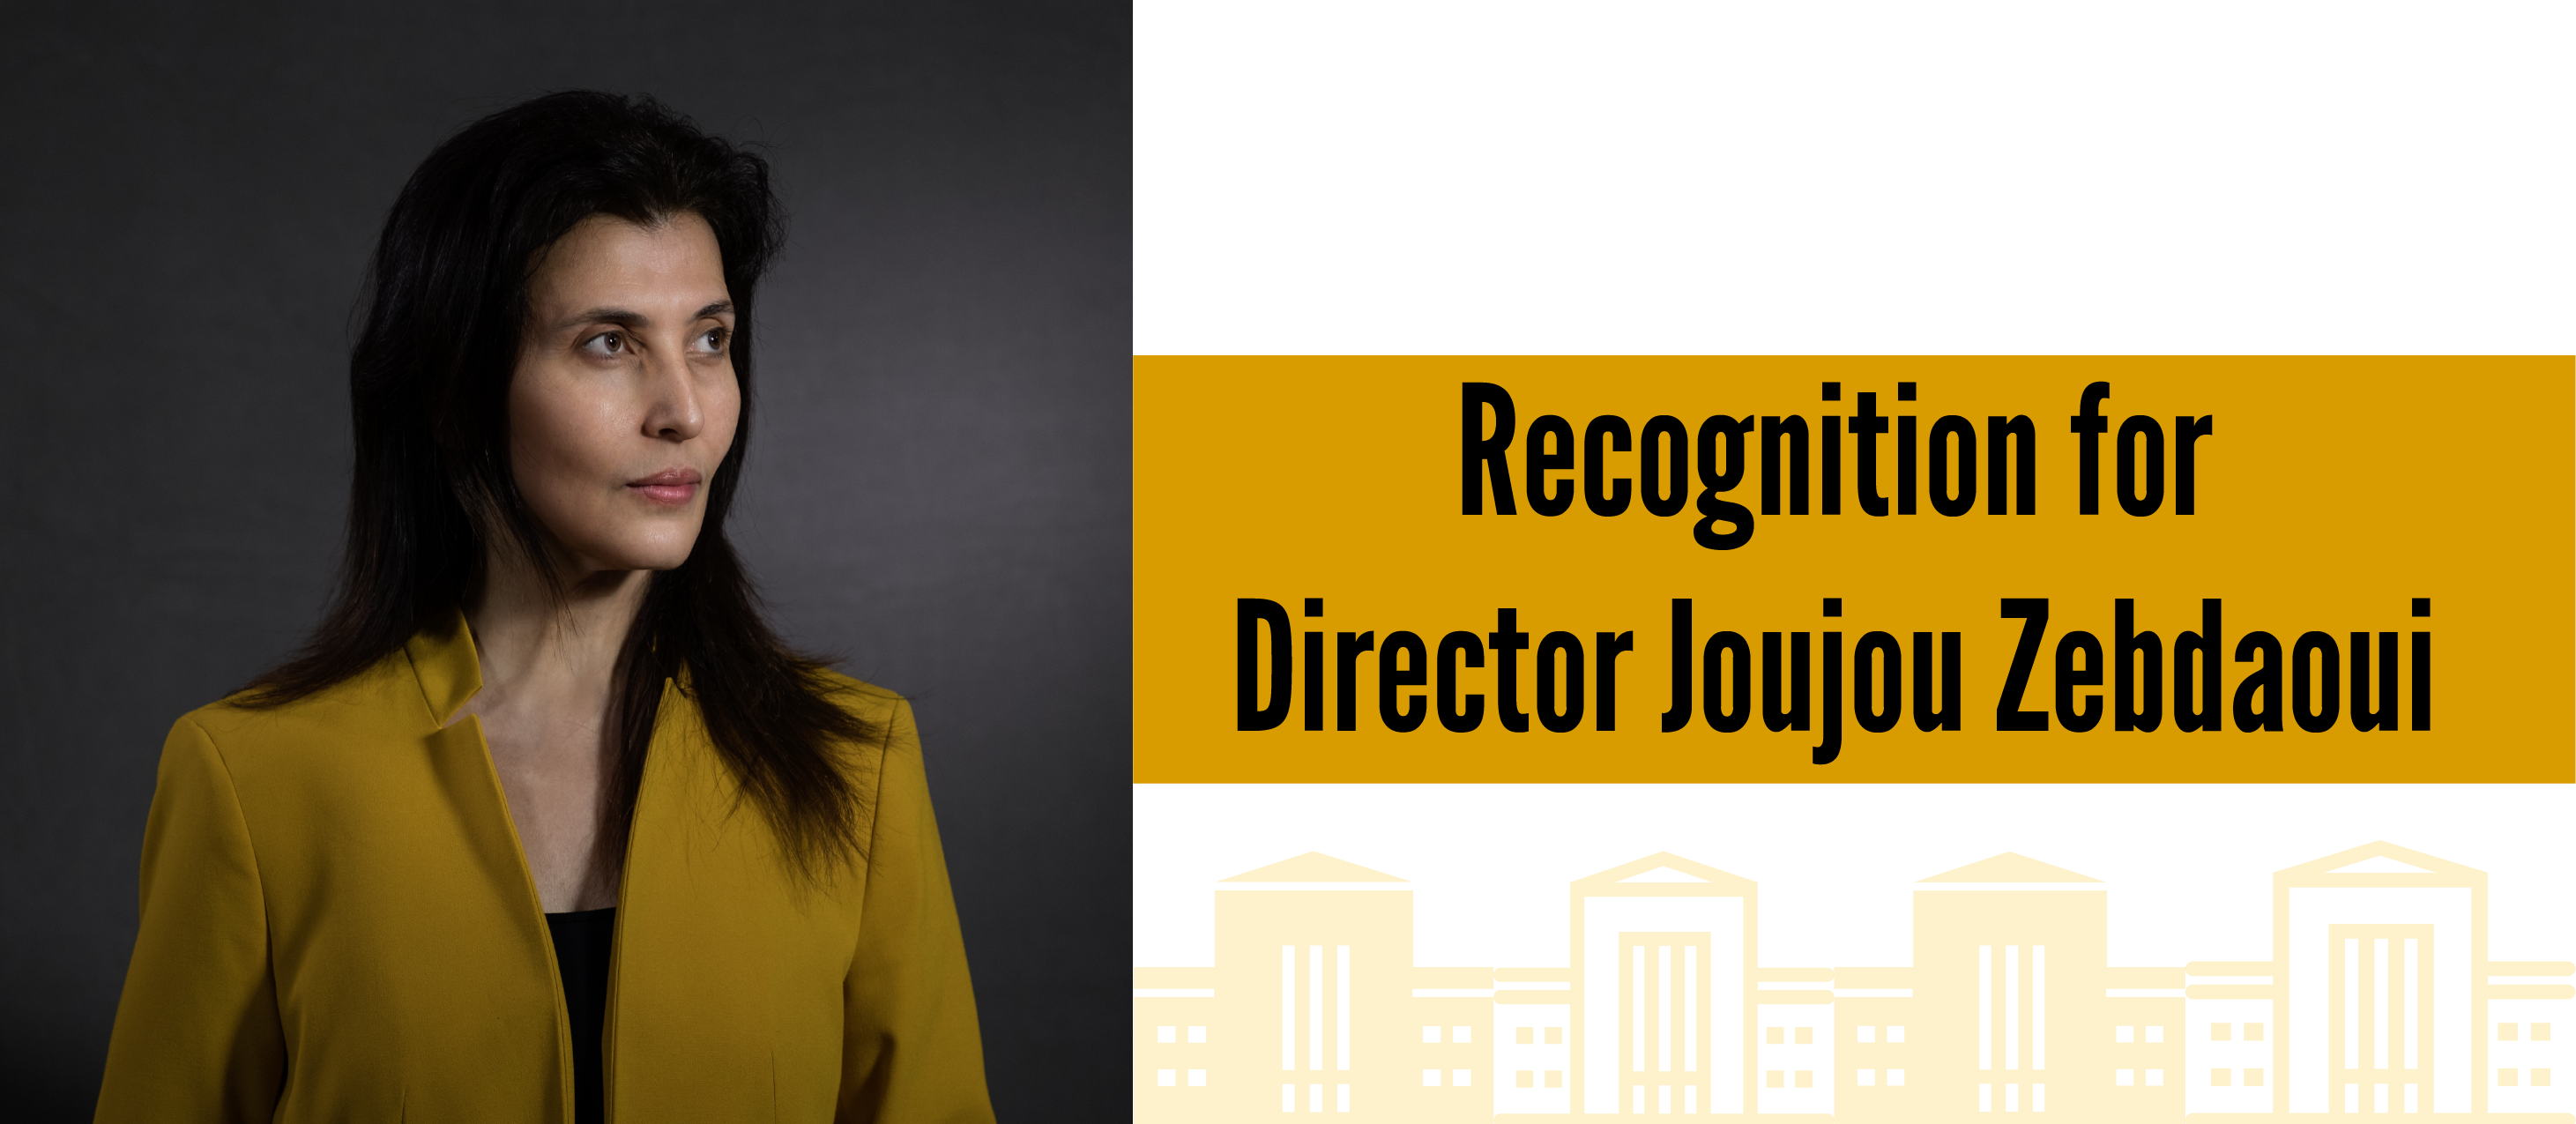 Recognition for Director Joujou Zebdaoui